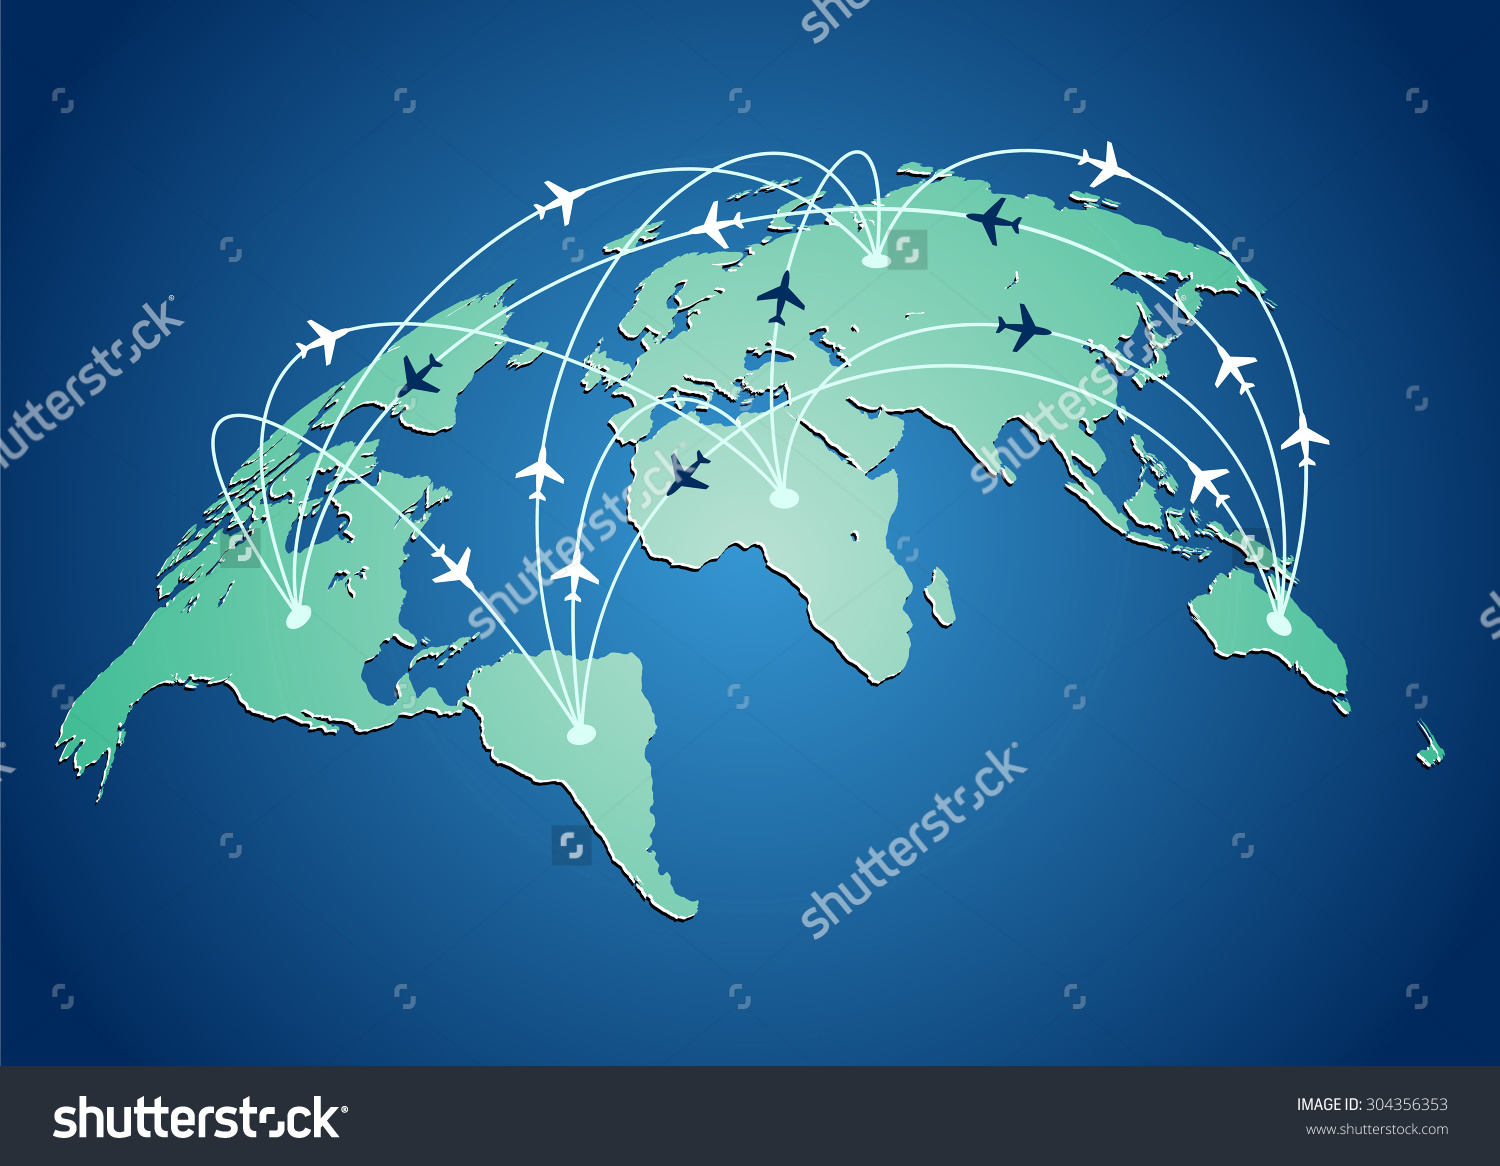 World flight routes airplanes. Airplane to us clipart map